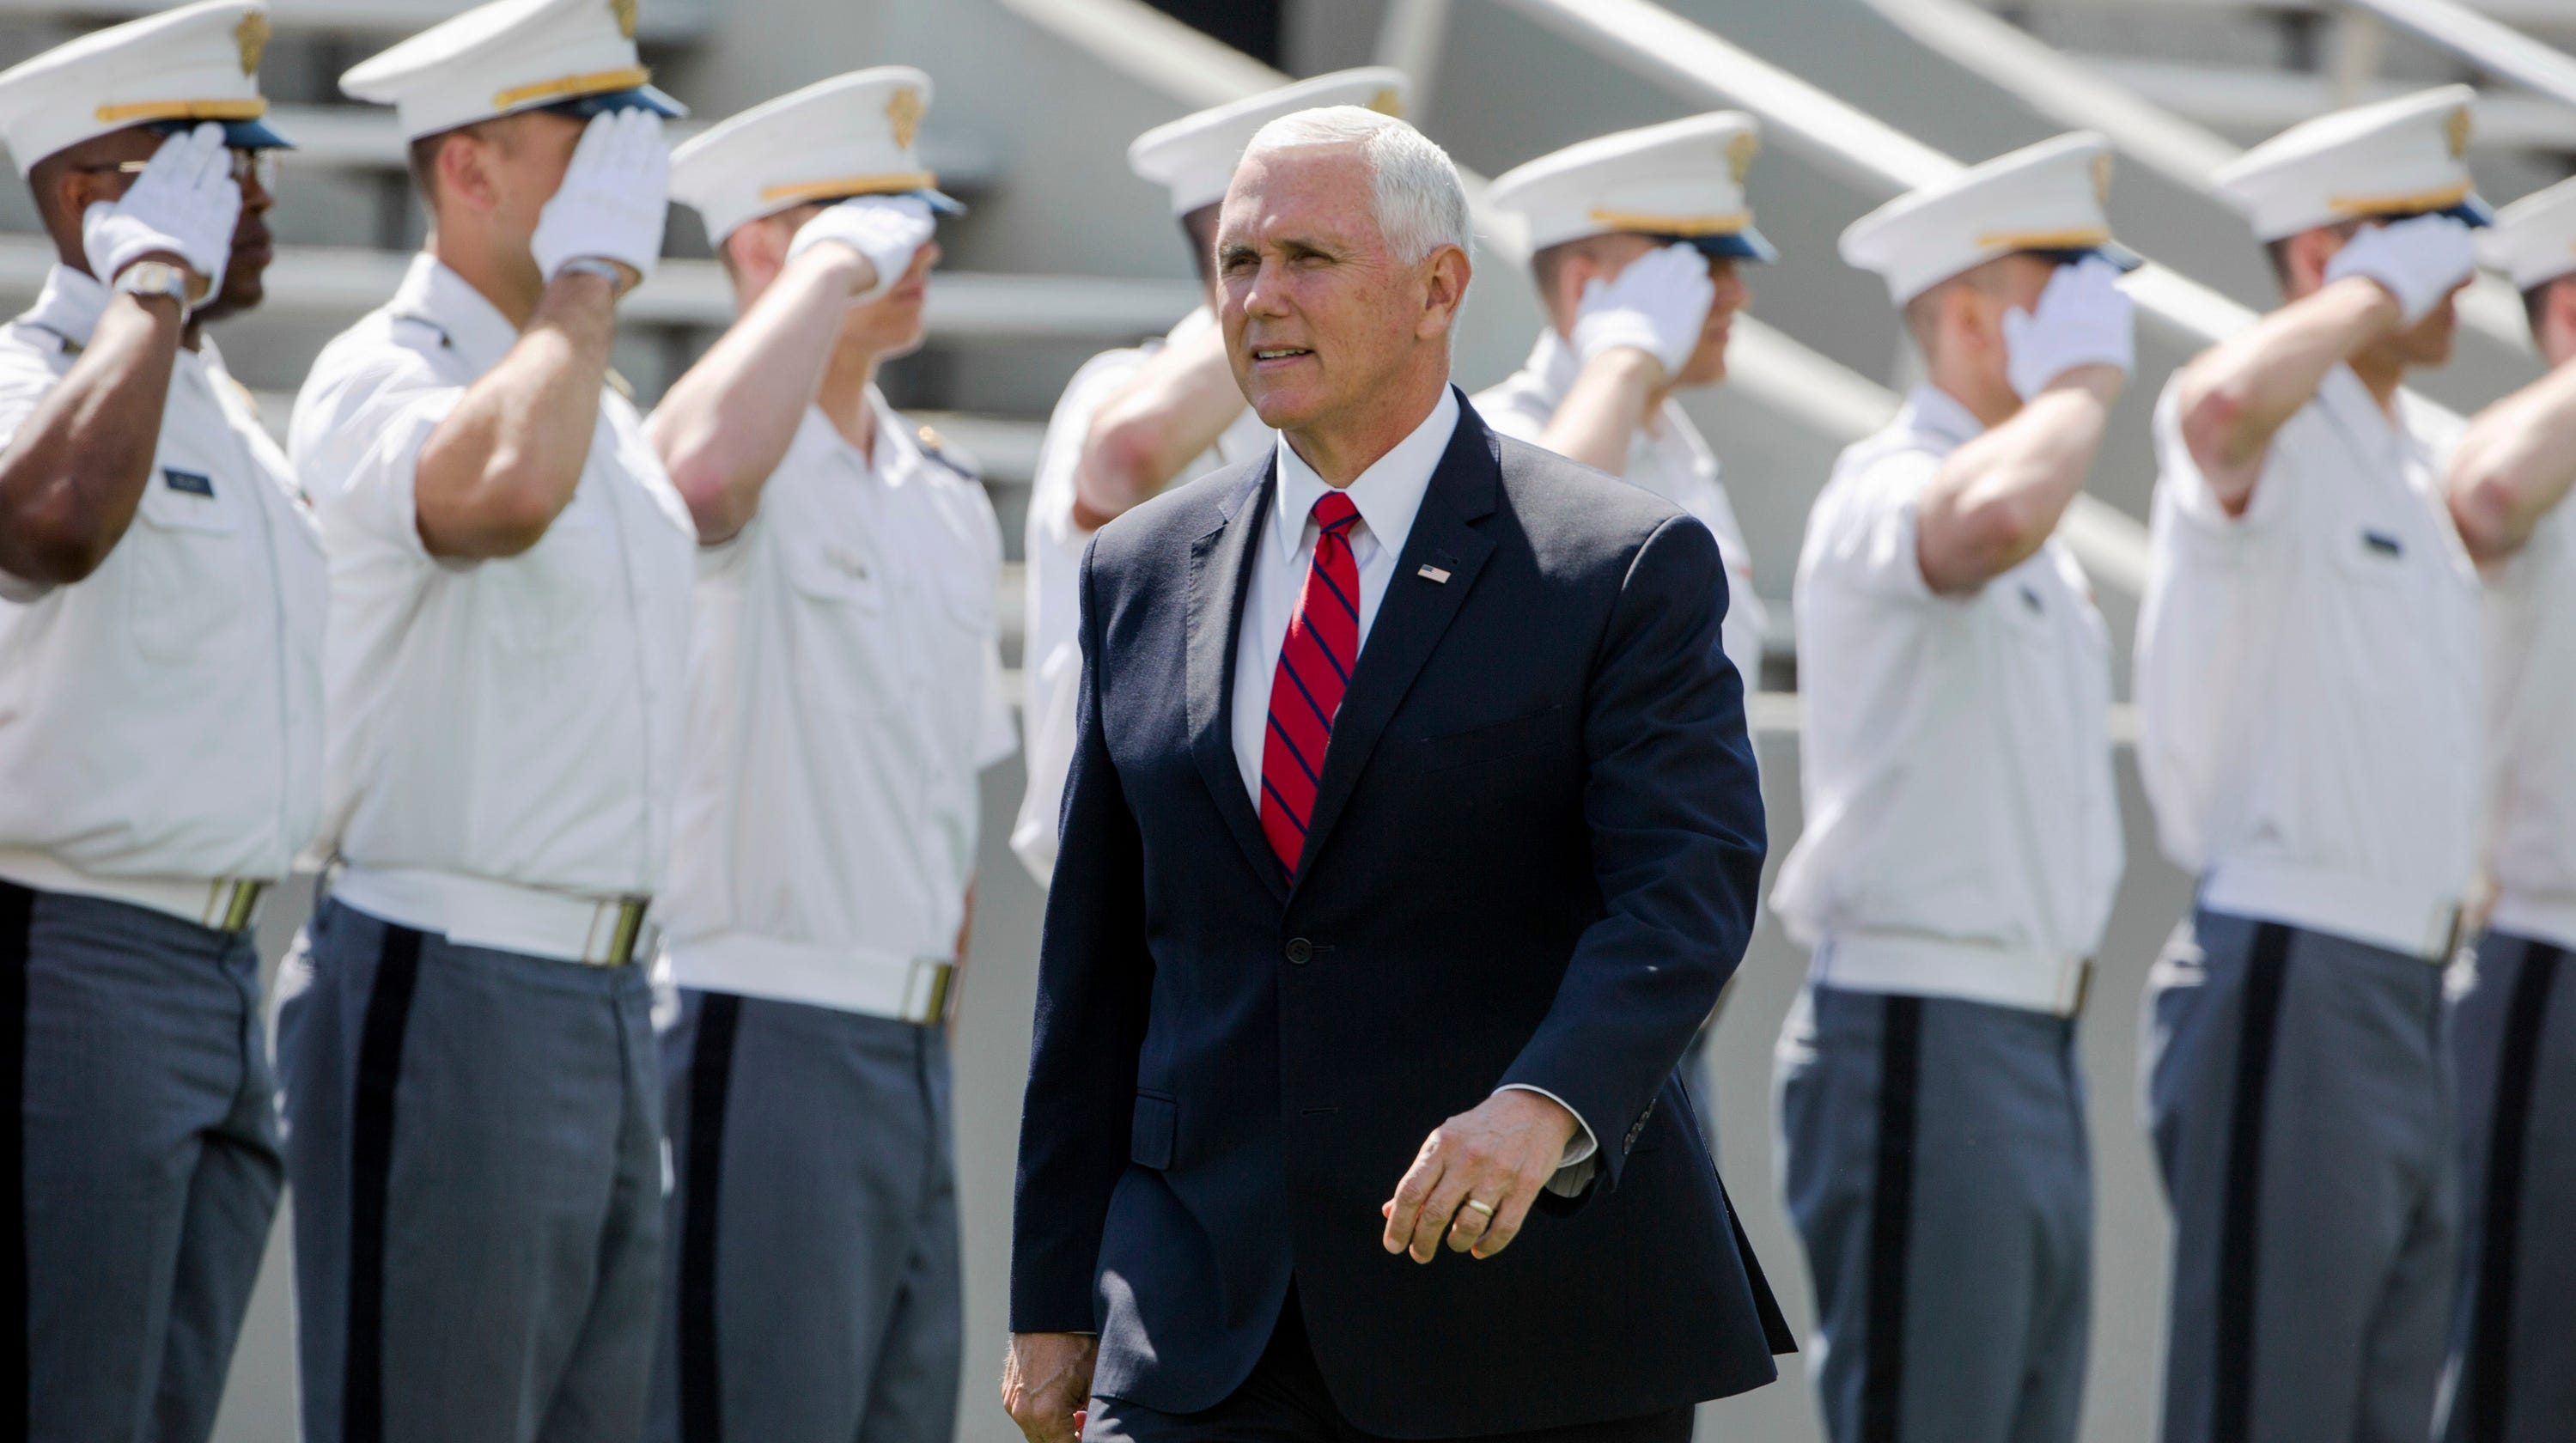 f76090813db Mike Pence, speaking at West Point, calls Trump 'the best friend' US  military 'will ever have'